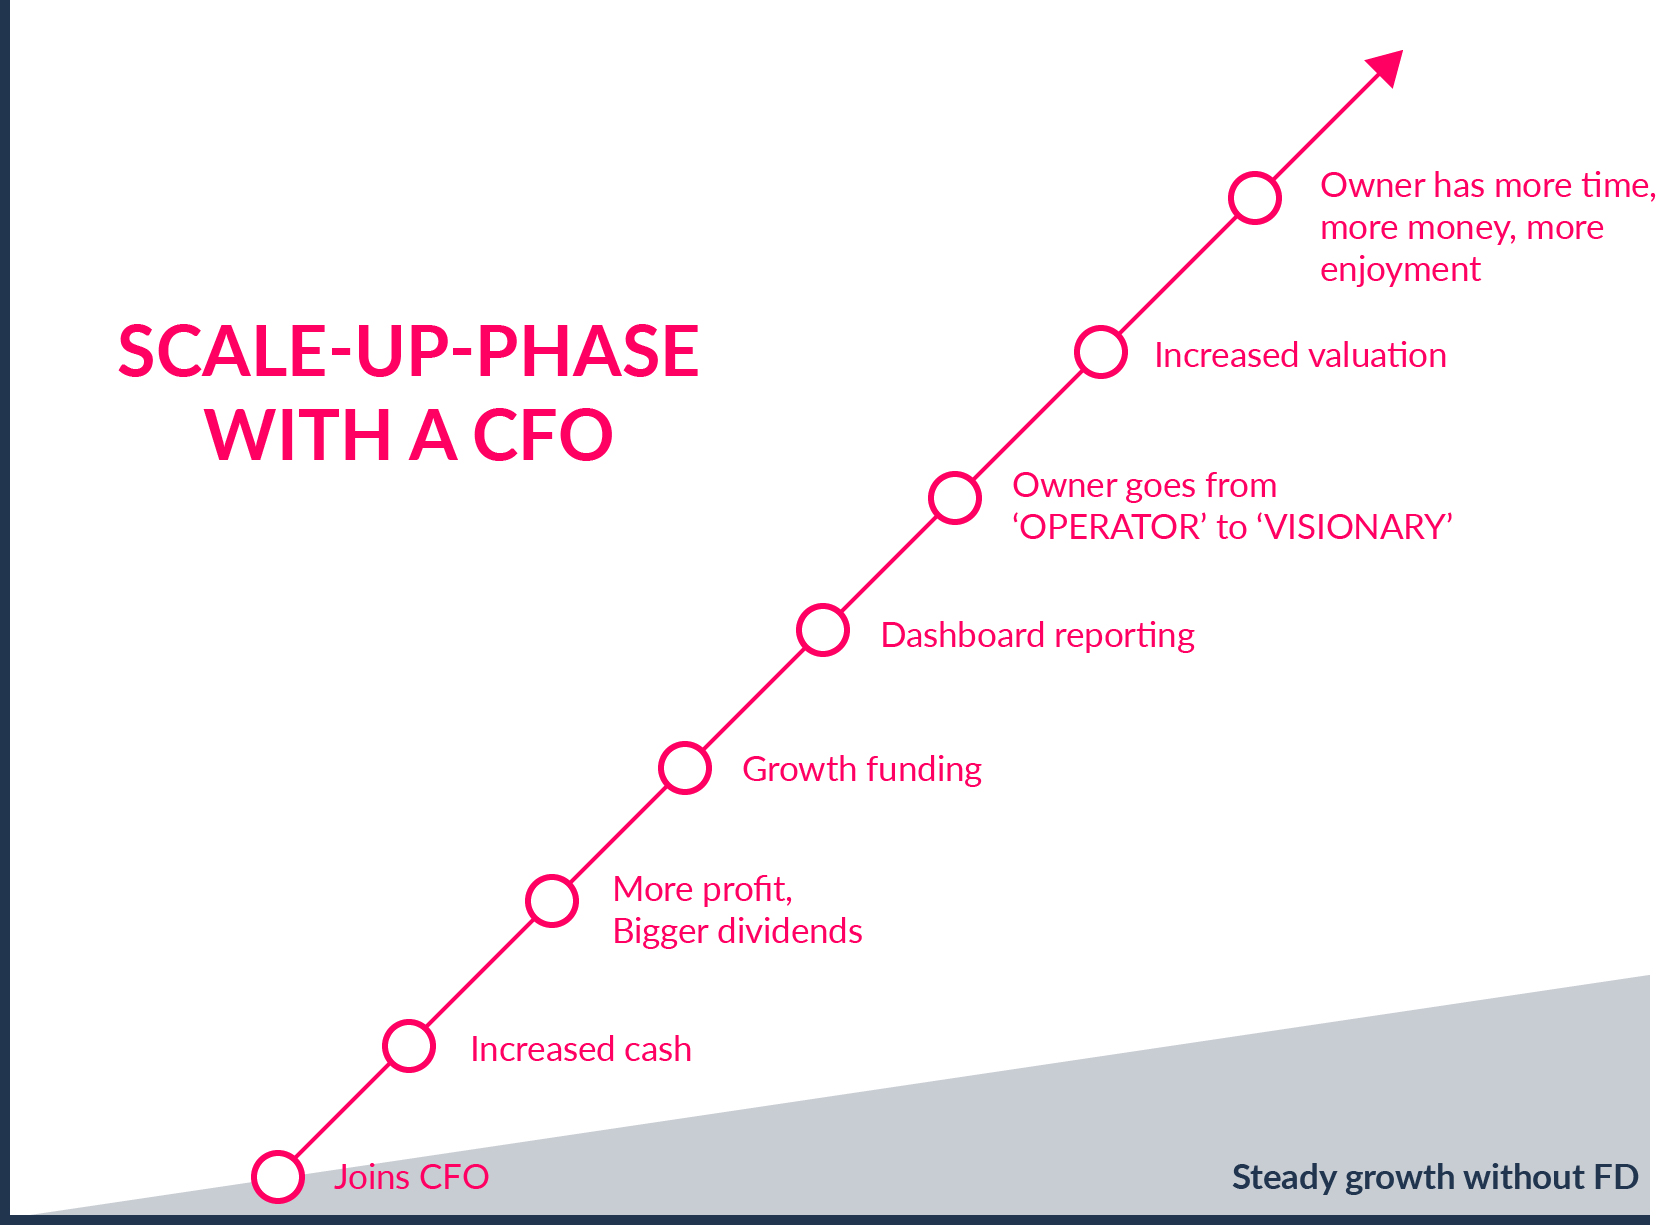 Graph showing steady growth plan